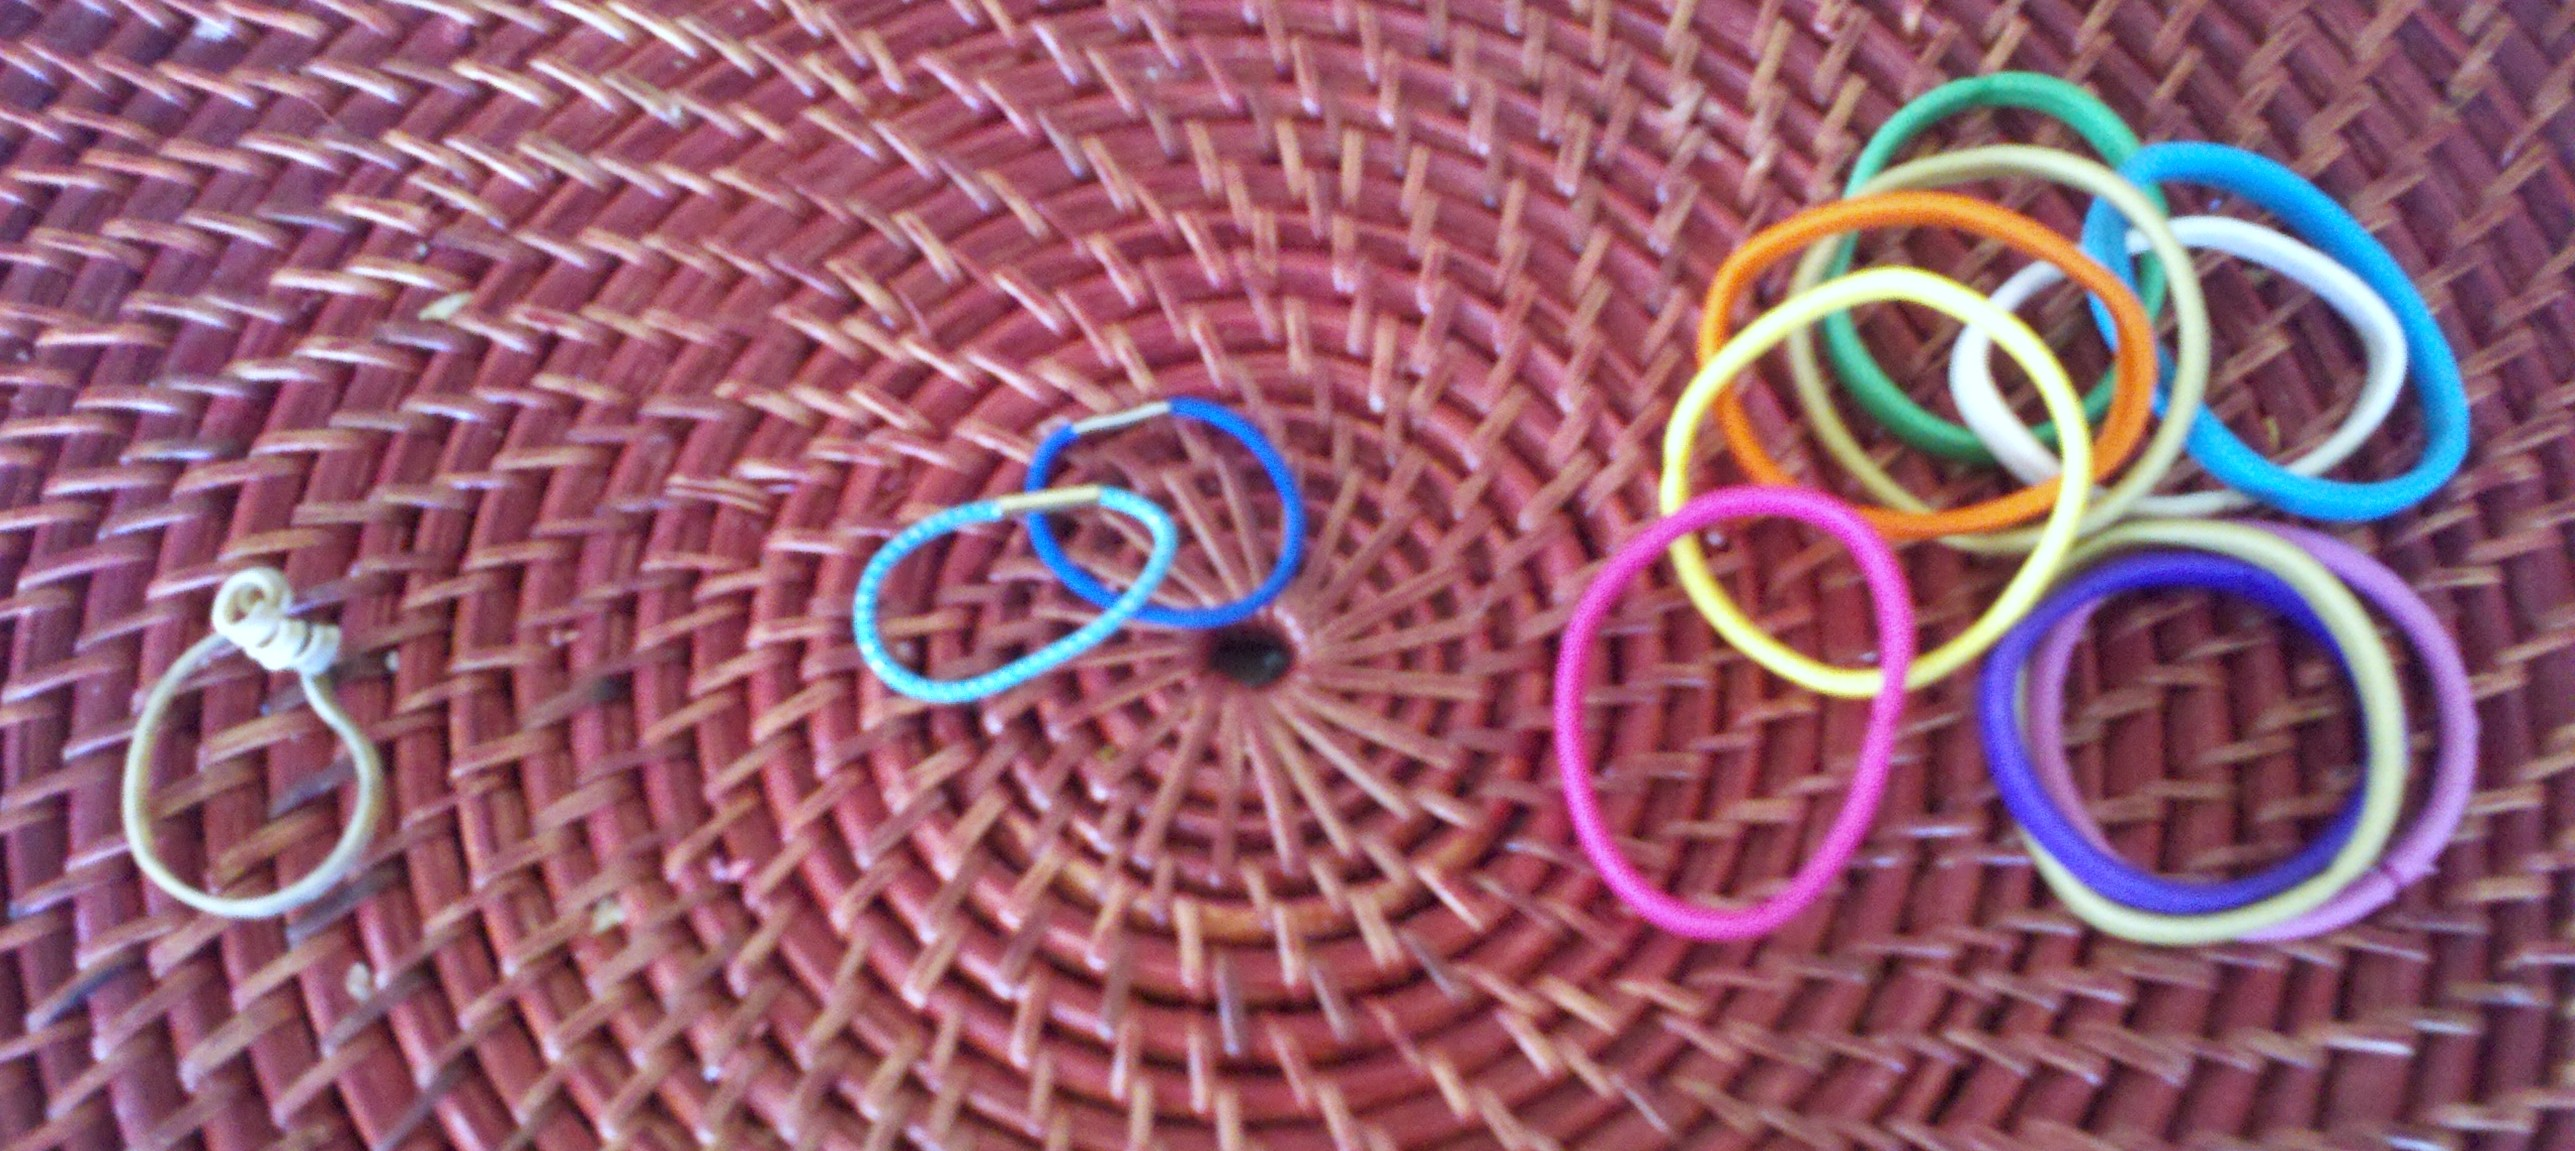 rubber band can